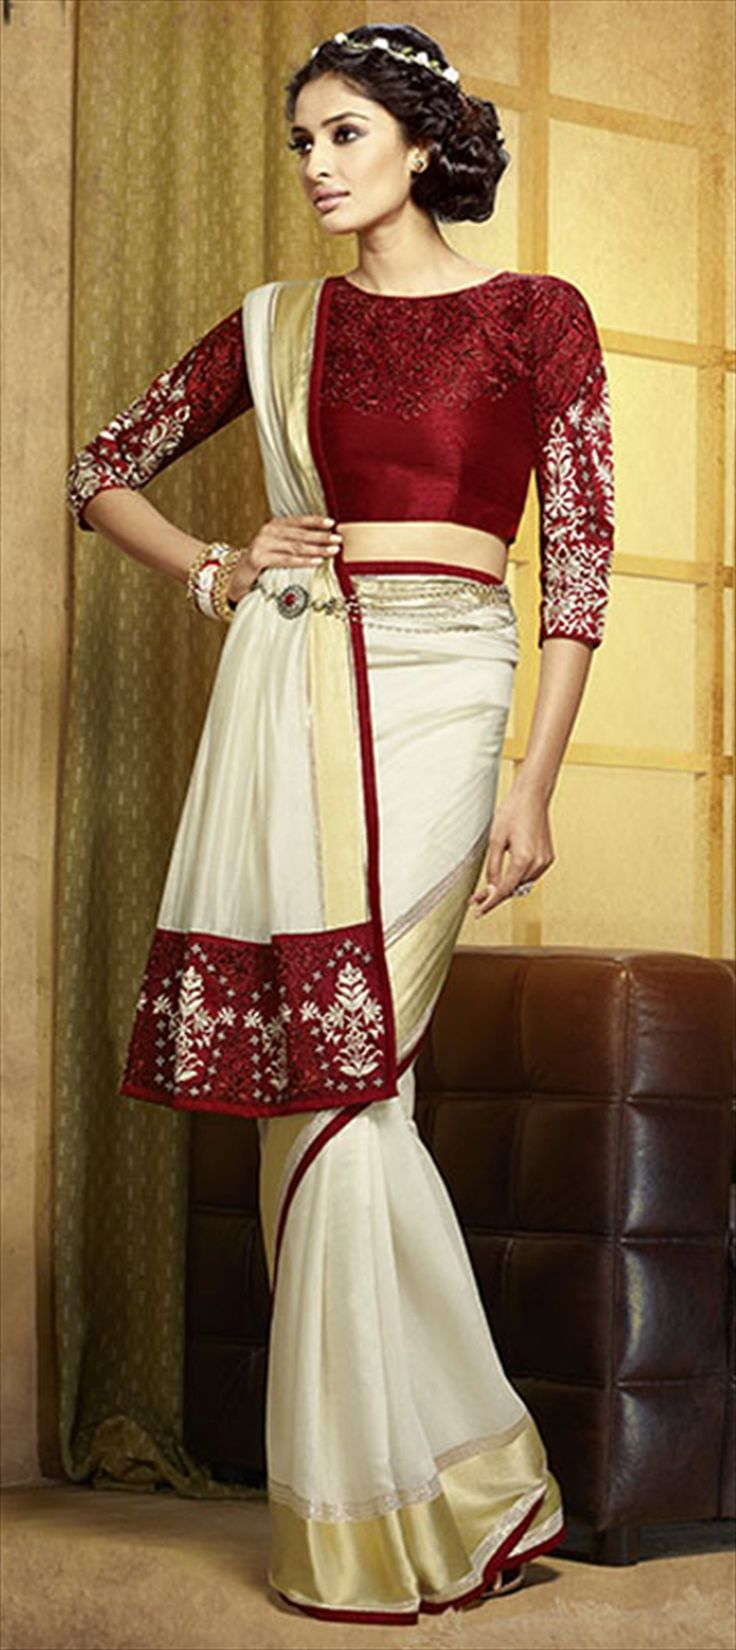 185955: Red and Maroon,White and Off White color family Embroidered Sarees,Party Wear Sarees with matching unstitched blouse.